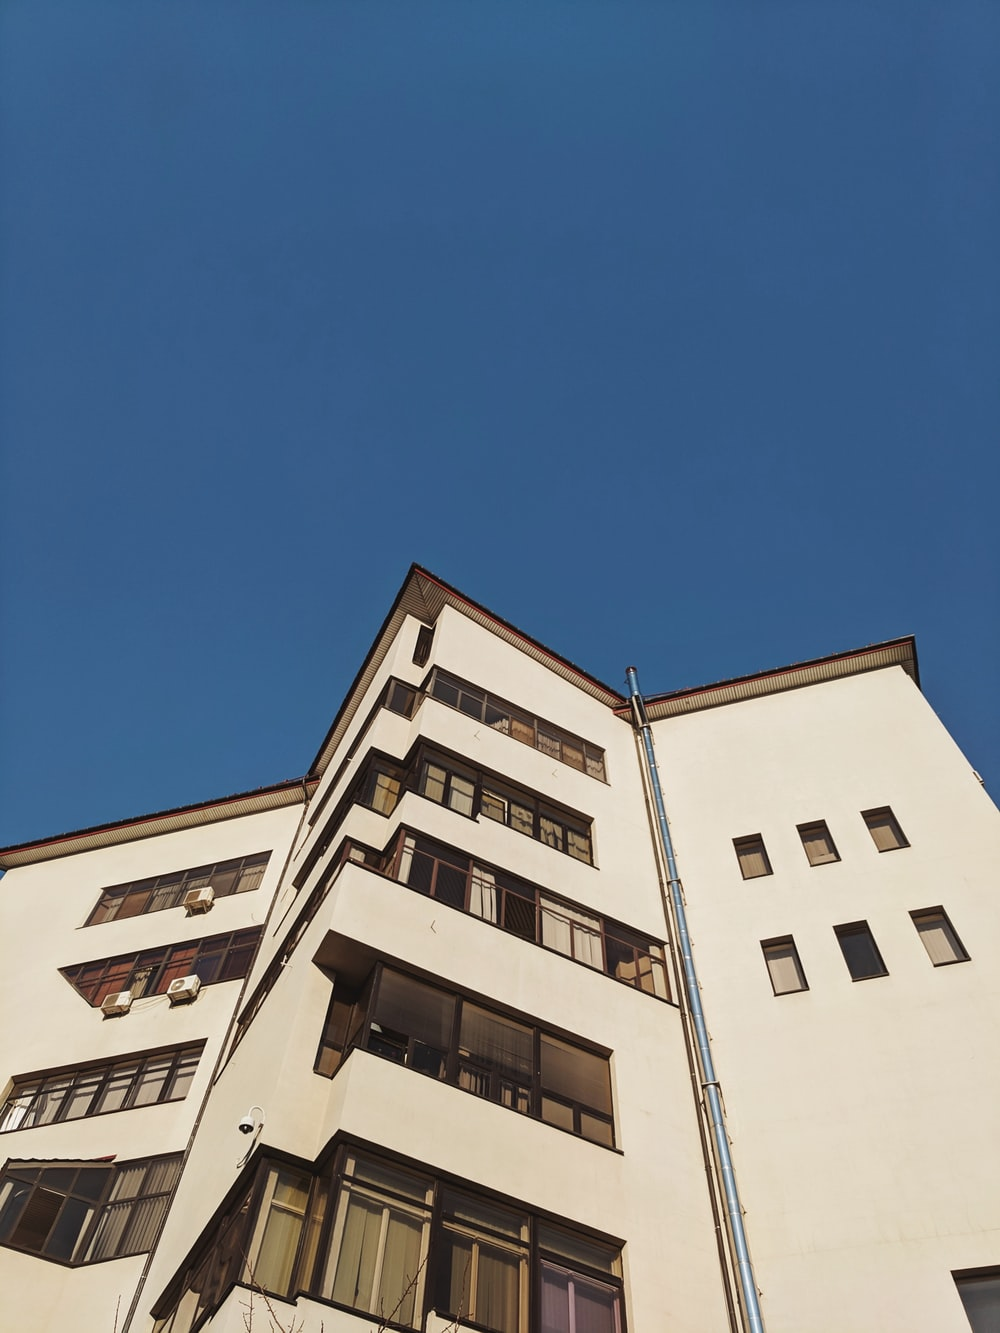 low-angle photography of white high-rise building